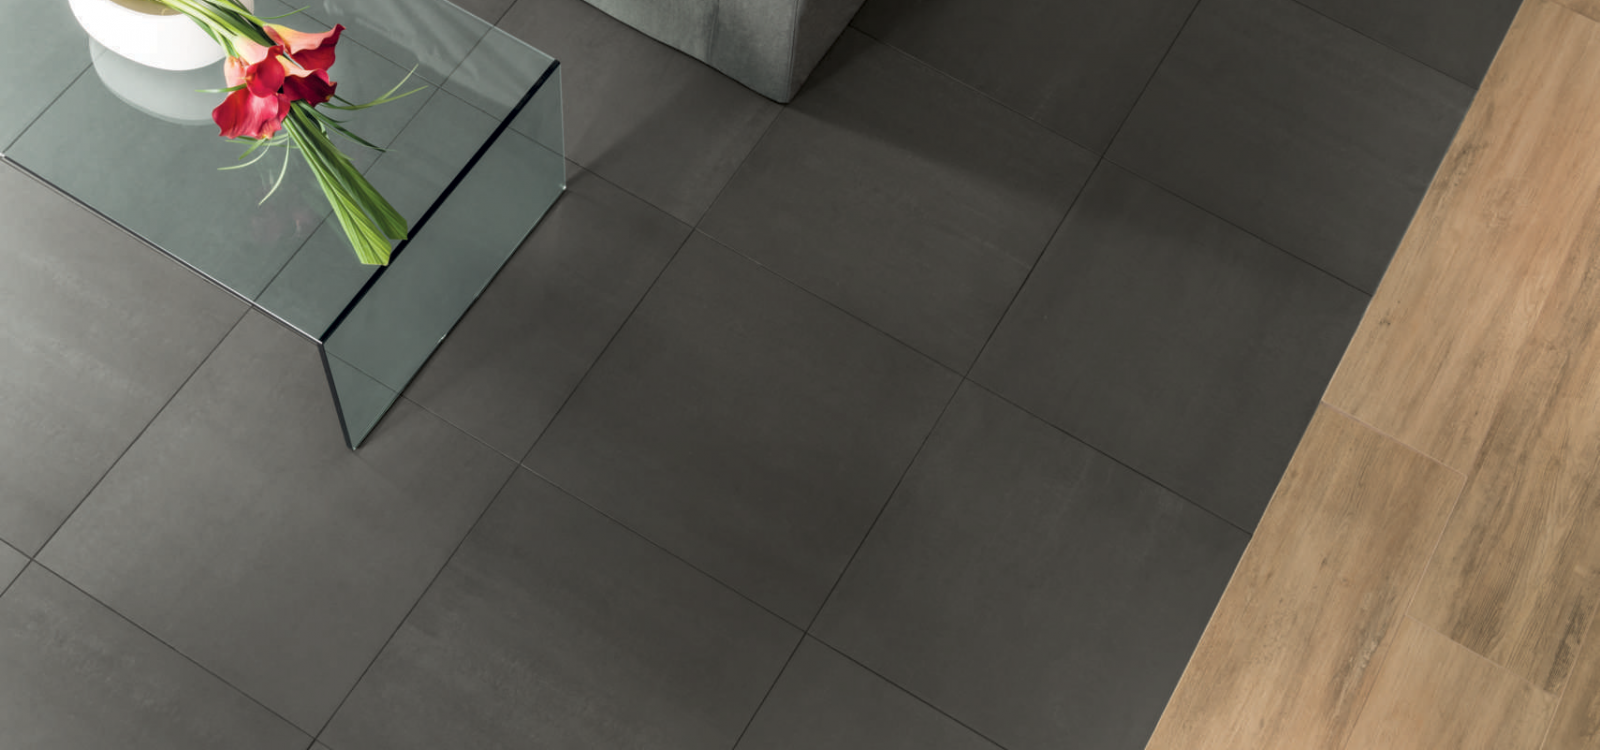 3 Tips On Choosing The Right Tile Grout